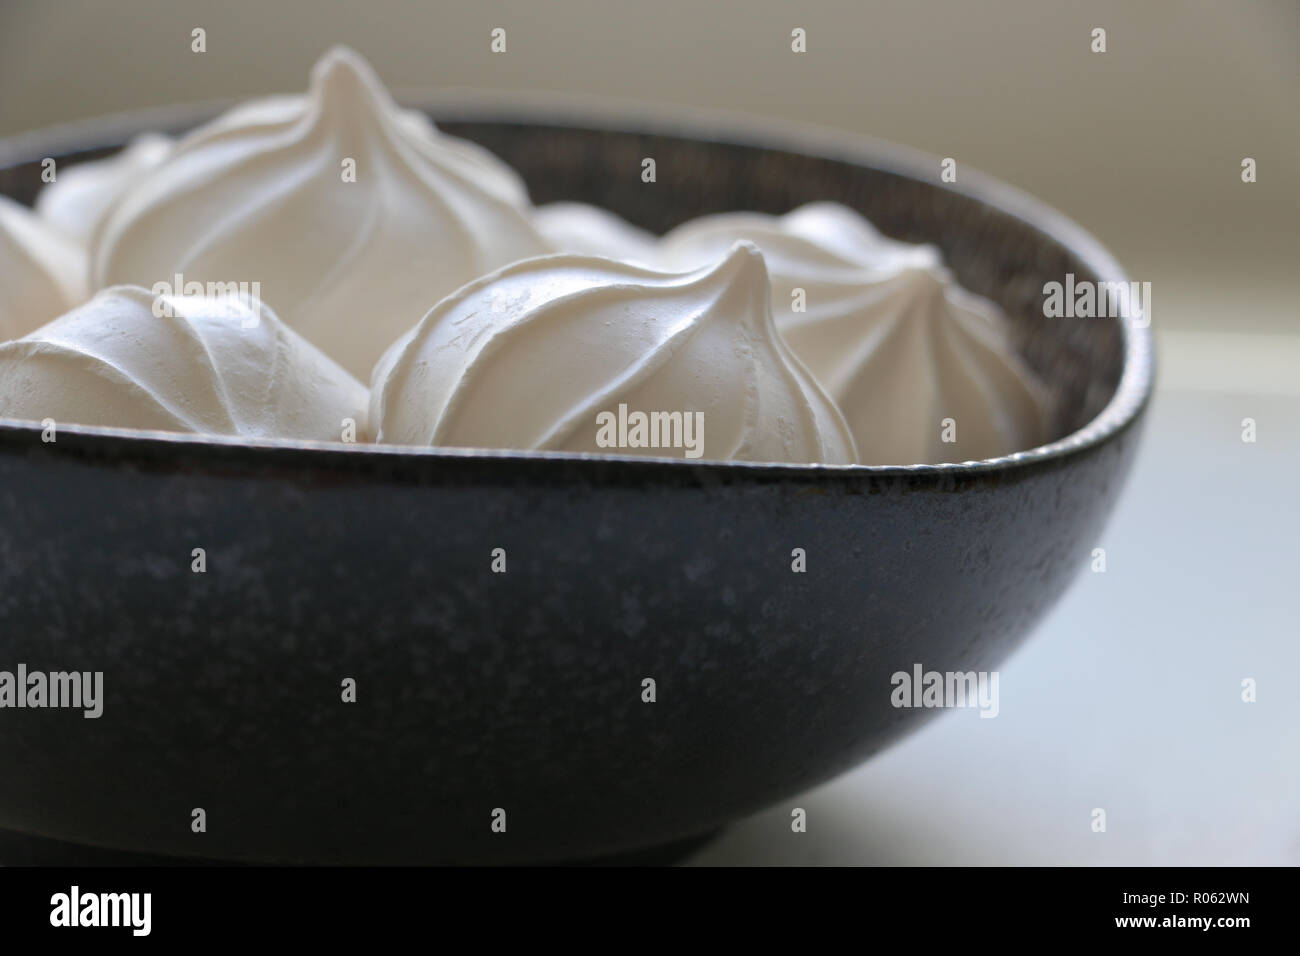 Close-up of a black bowl filled with white meringues just peeking out of the top in diffuse natural window light; a nice nibble for tea time. - Stock Image